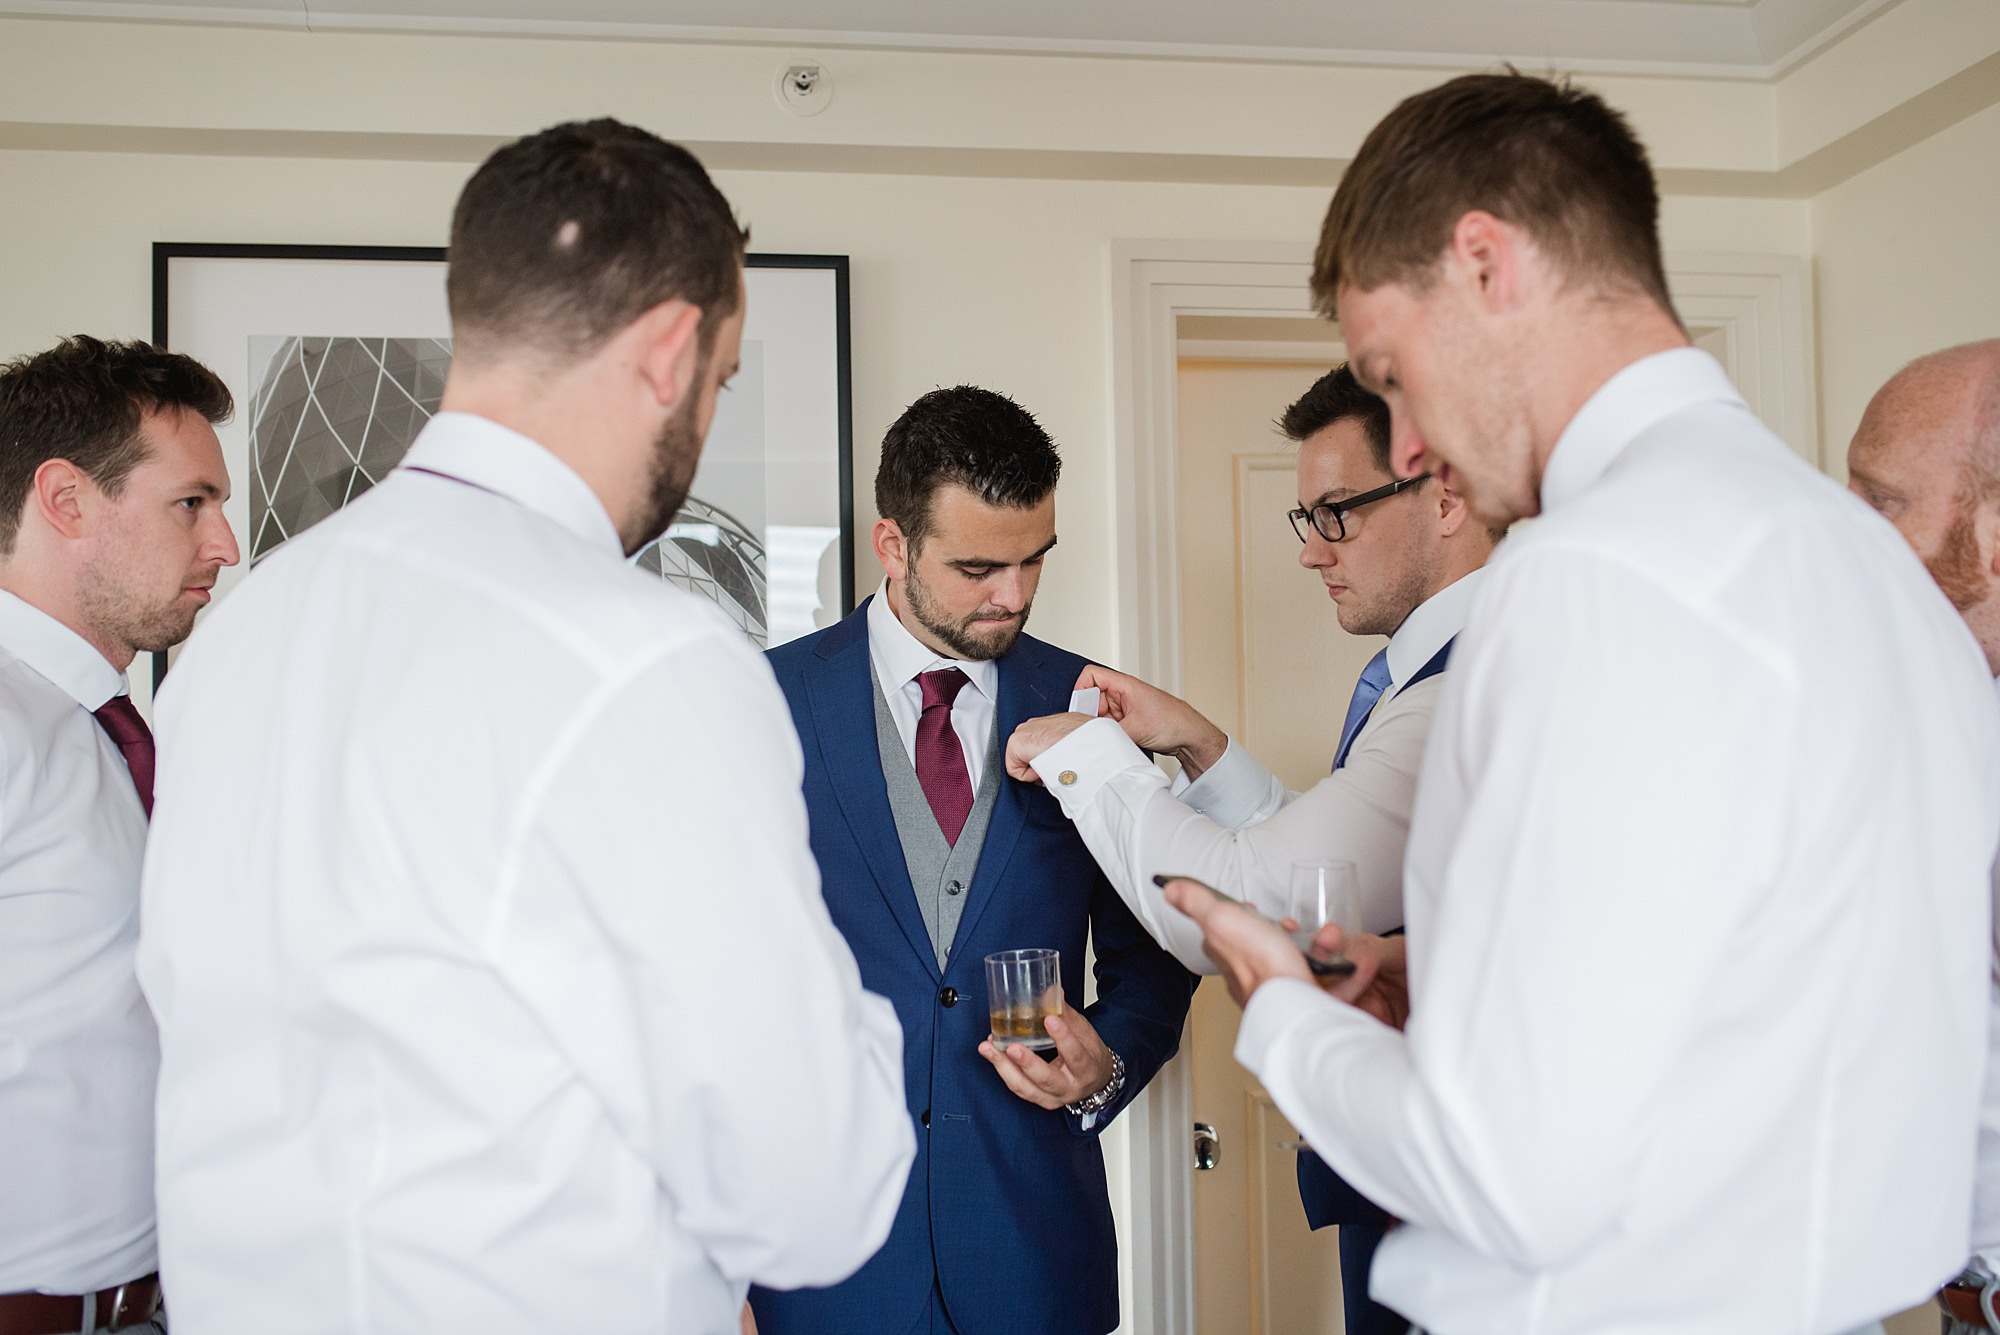 groomsmen help groom with pocket square